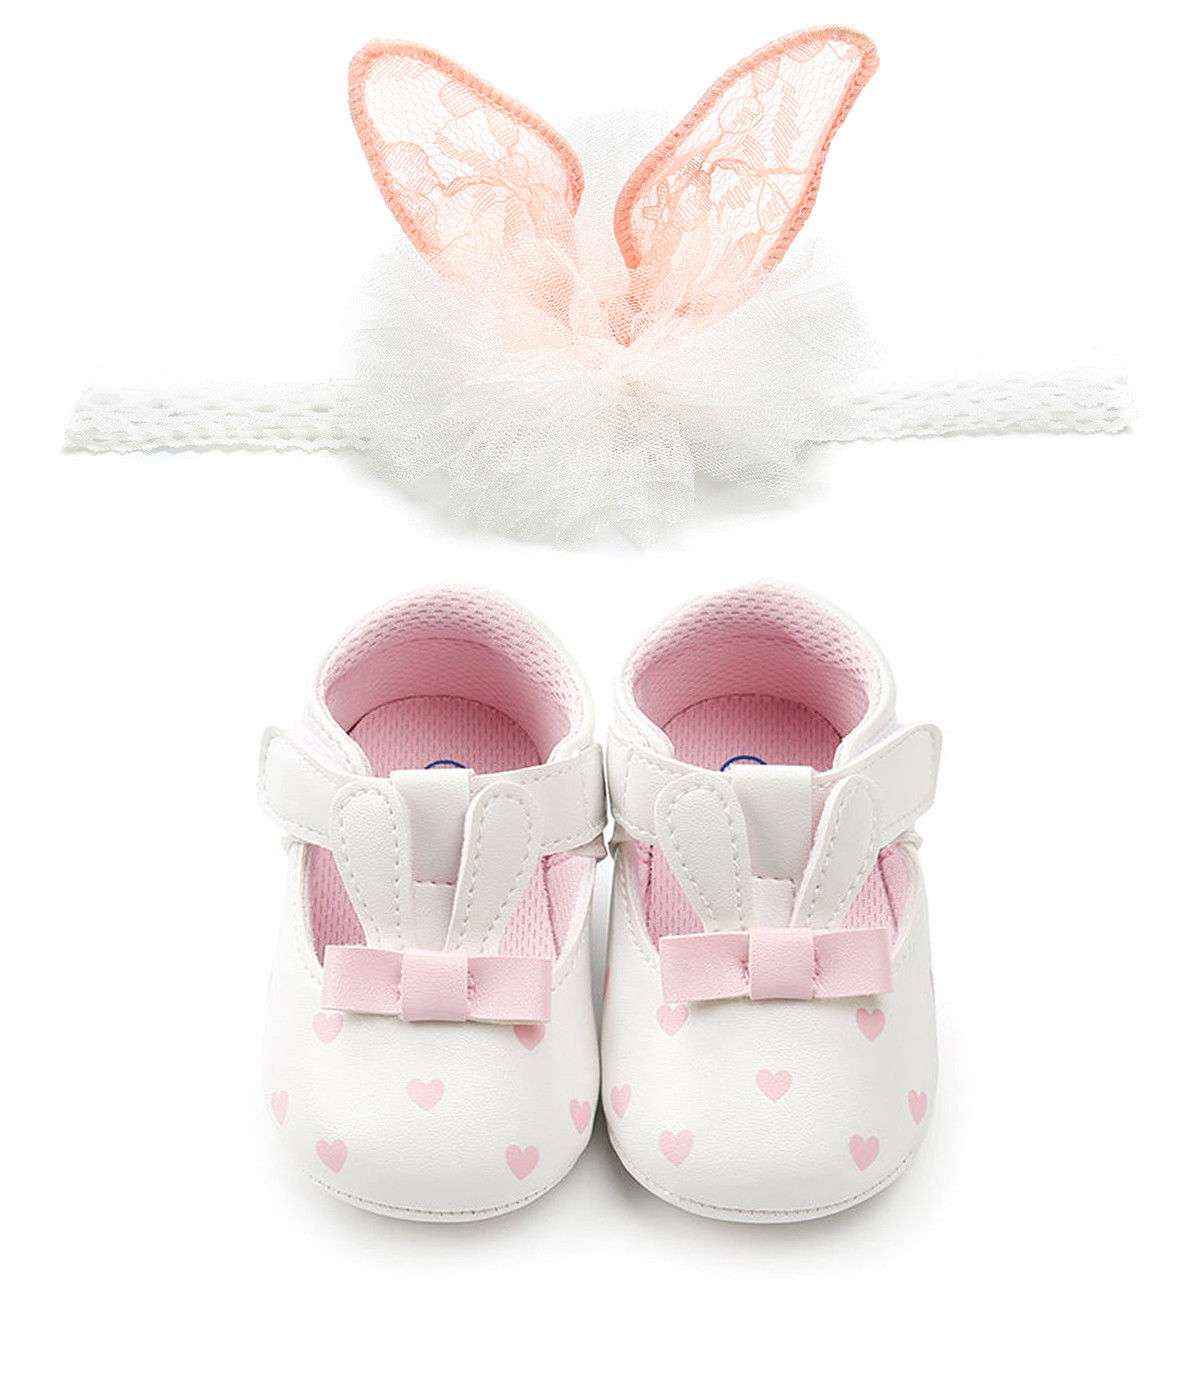 Easter Newborn Baby Girls Shoes Bunny Ears Anti-slip Pu Leather First  Walkers With Headband Soft Crib Shoes